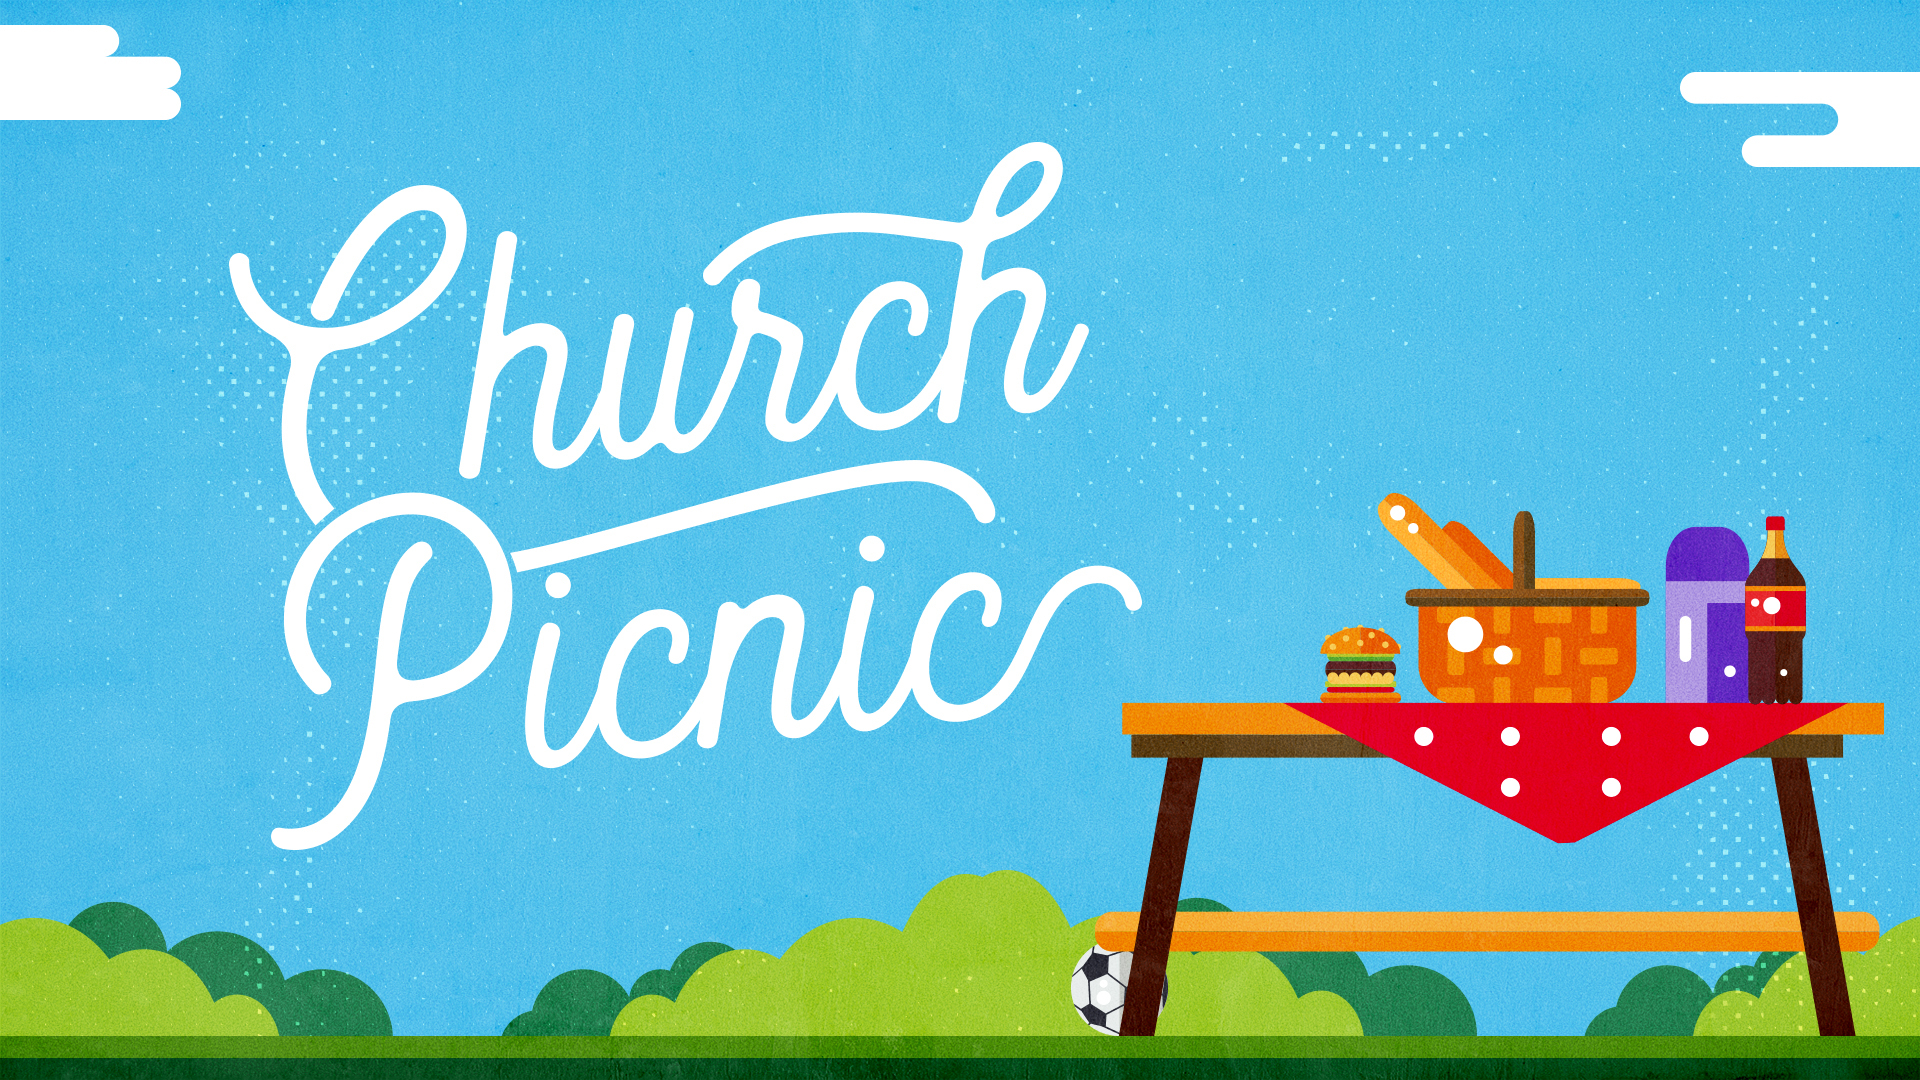 Chruch Picnic Drawing copy image